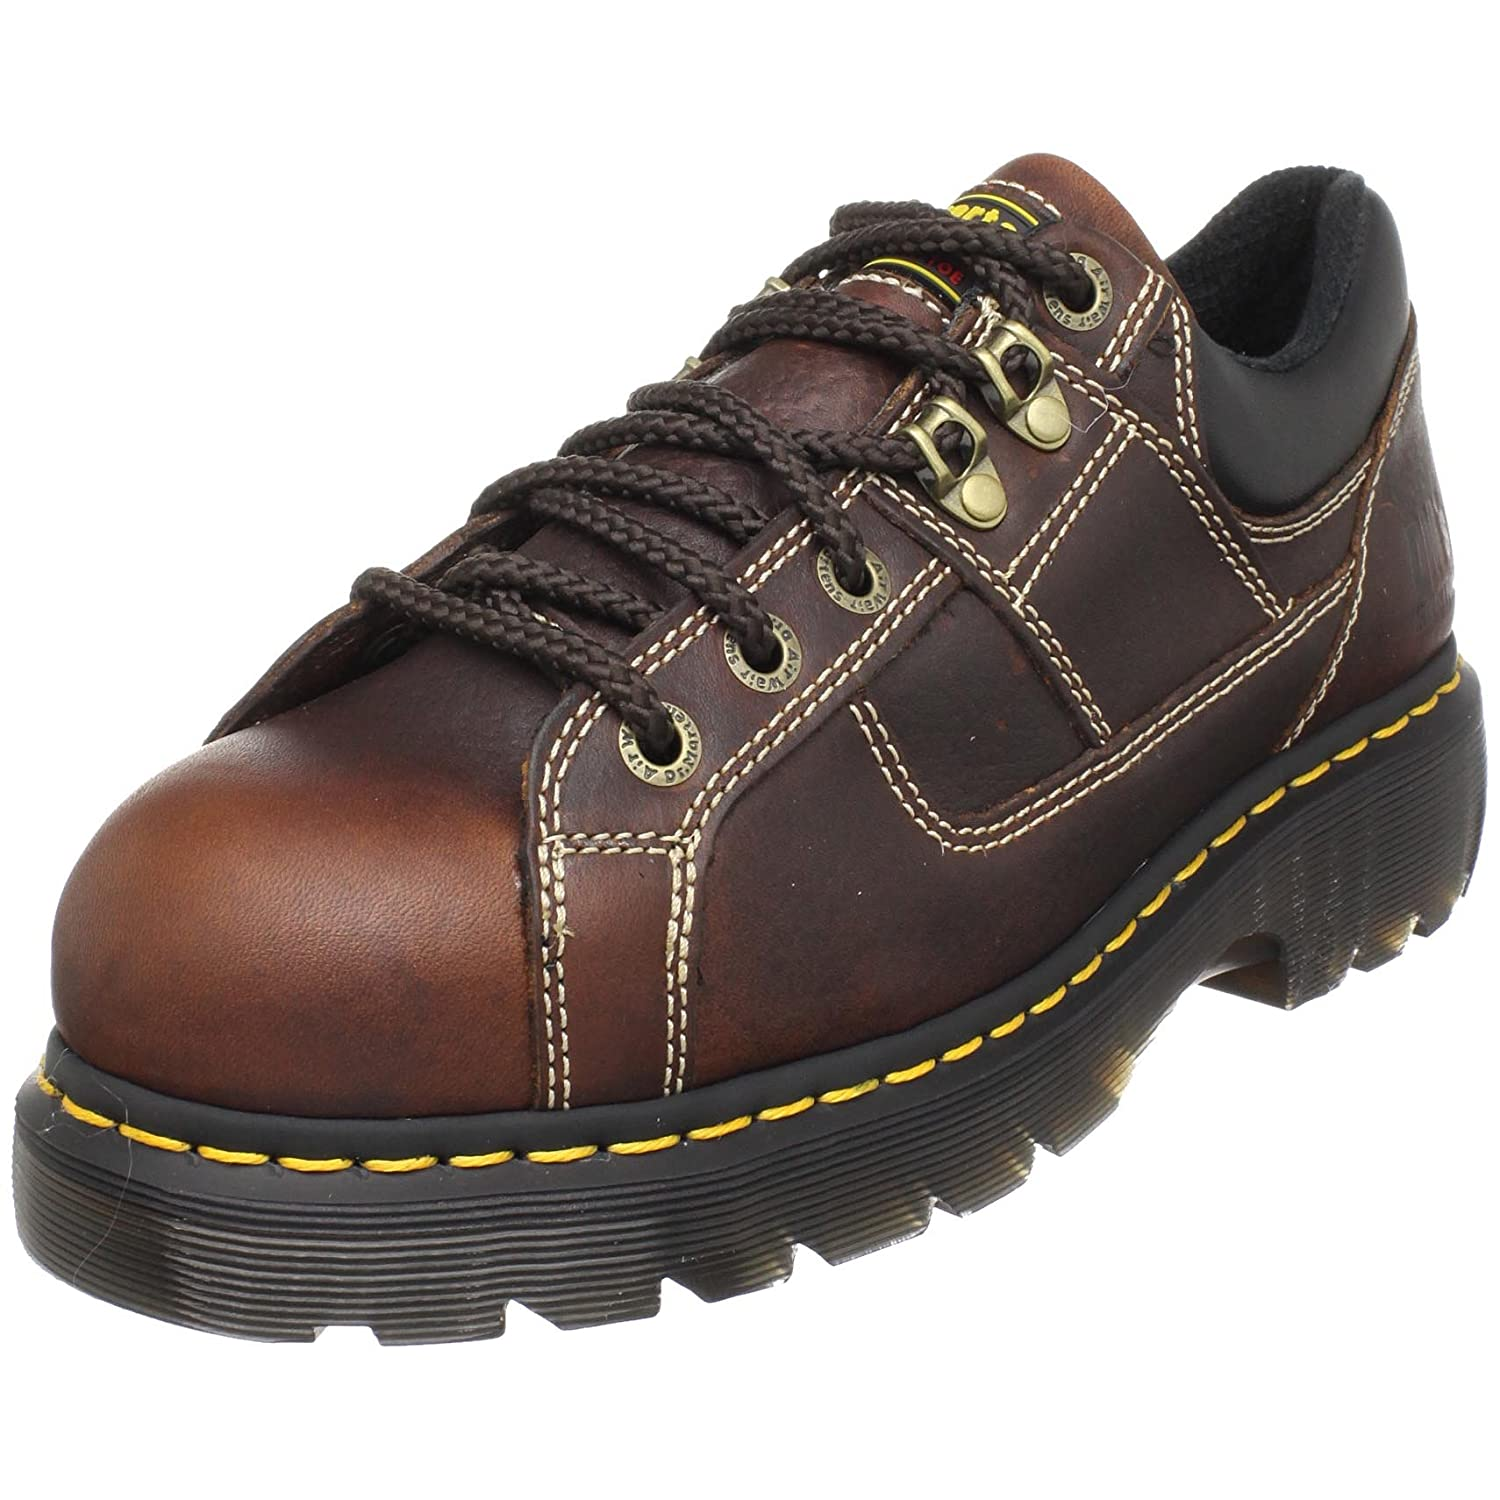 Dr. Martens Gunby Steel Toe Shoe B001J4BRLC 6 UK/8 M US Women's/7 M US Men's|Teak